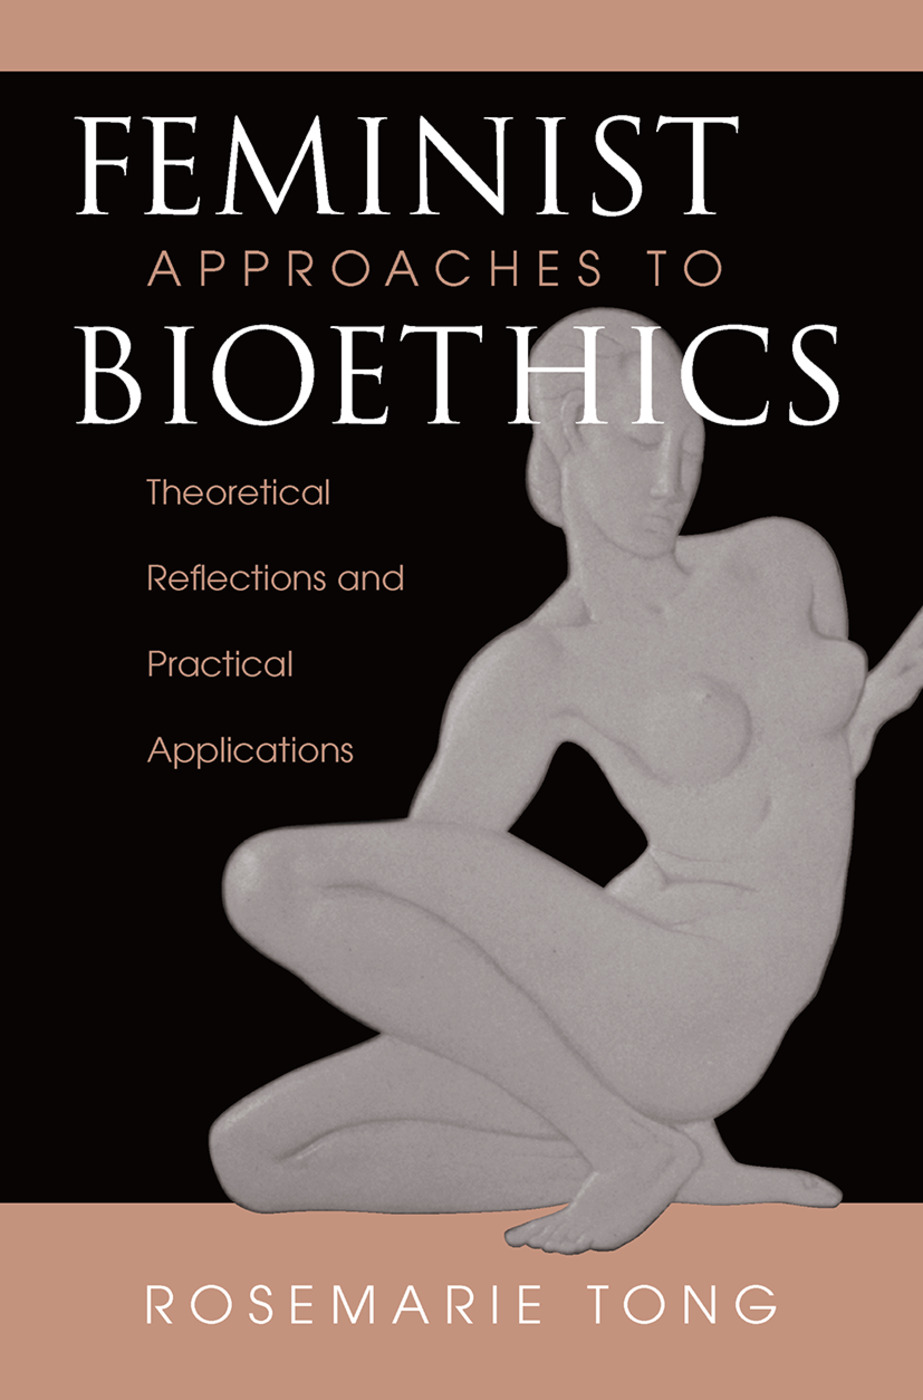 Feminist Approaches To Bioethics: Theoretical Reflections And Practical Applications book cover